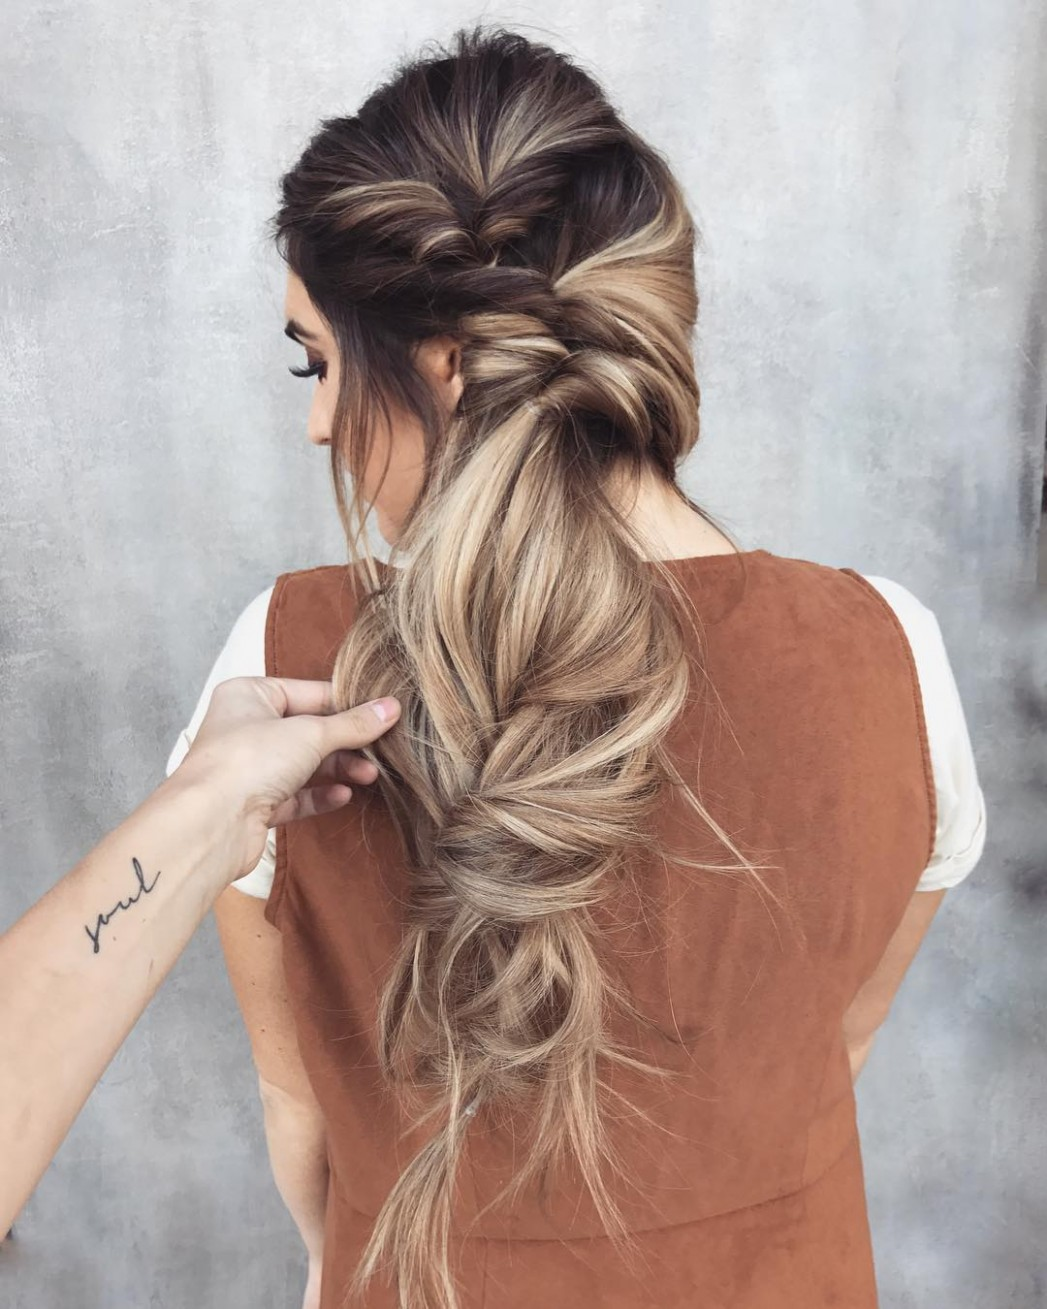 9 Messy Braided Long Hairstyle Ideas For Weddings & Vacations Messy Long Hairstyles